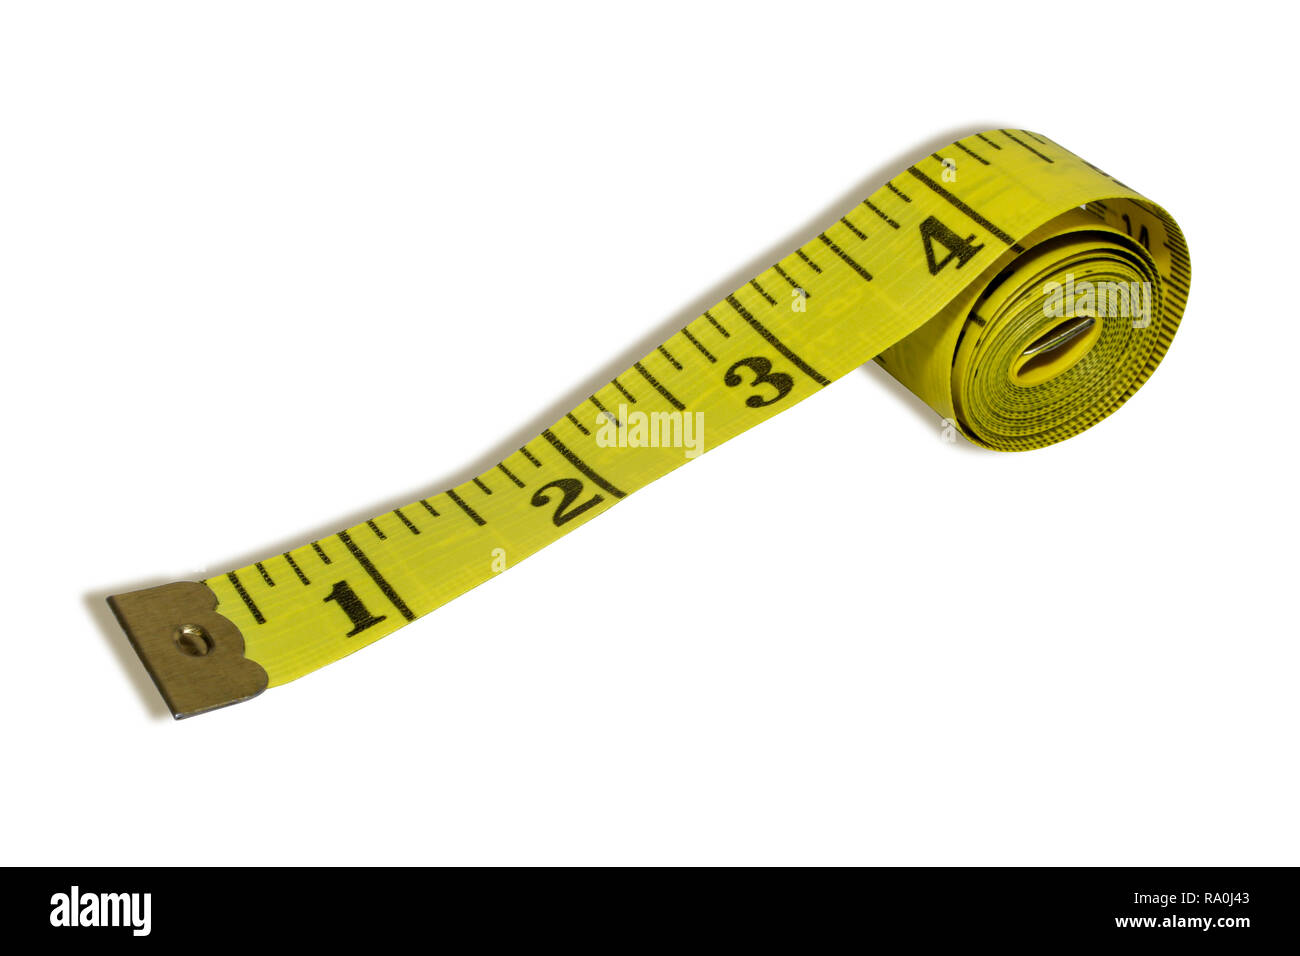 Rolled Yellow Measuring Tape Isolated On White Background. - Stock Image